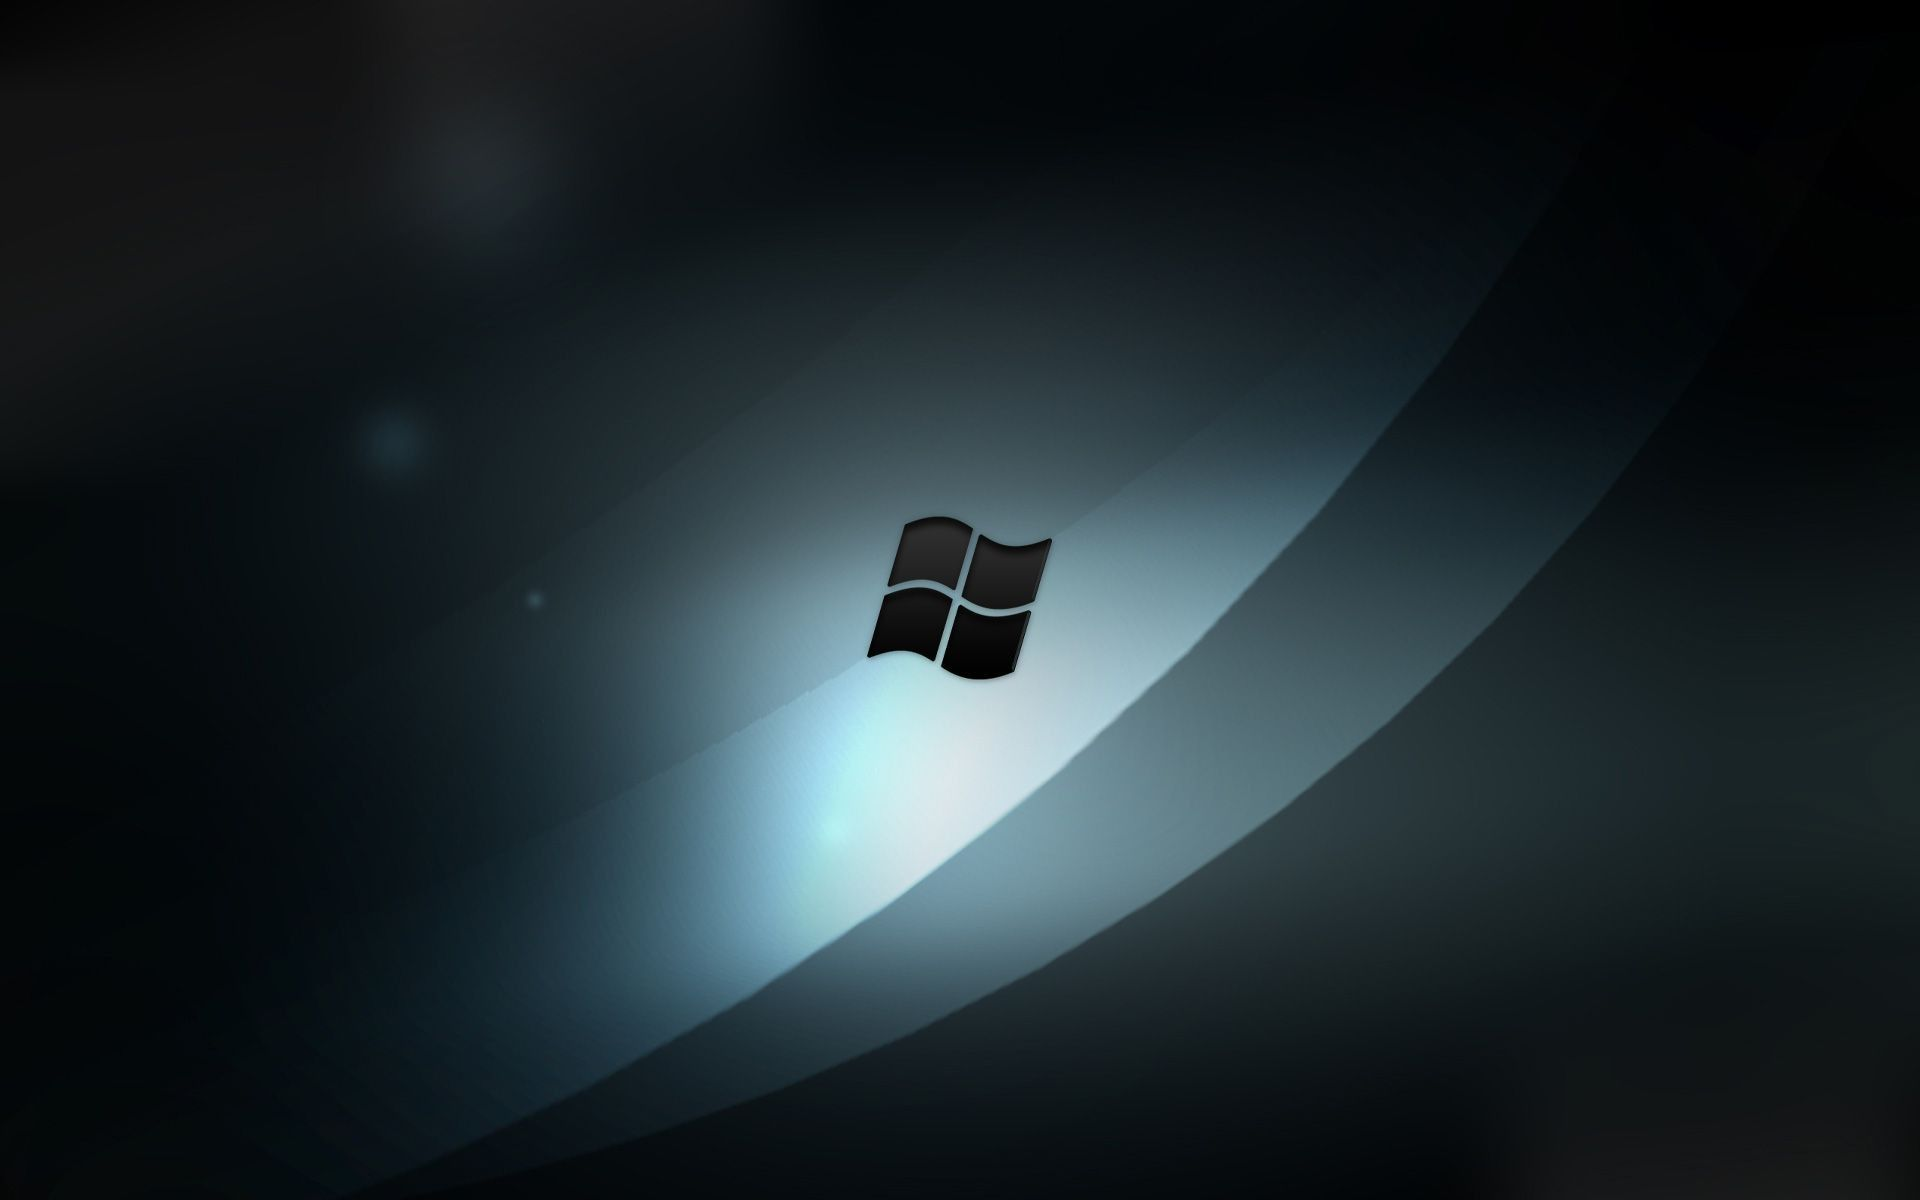 Awesome Windows Background Slideshow Wallpaper Android Wallpaper Pc Wallpaper Laptop